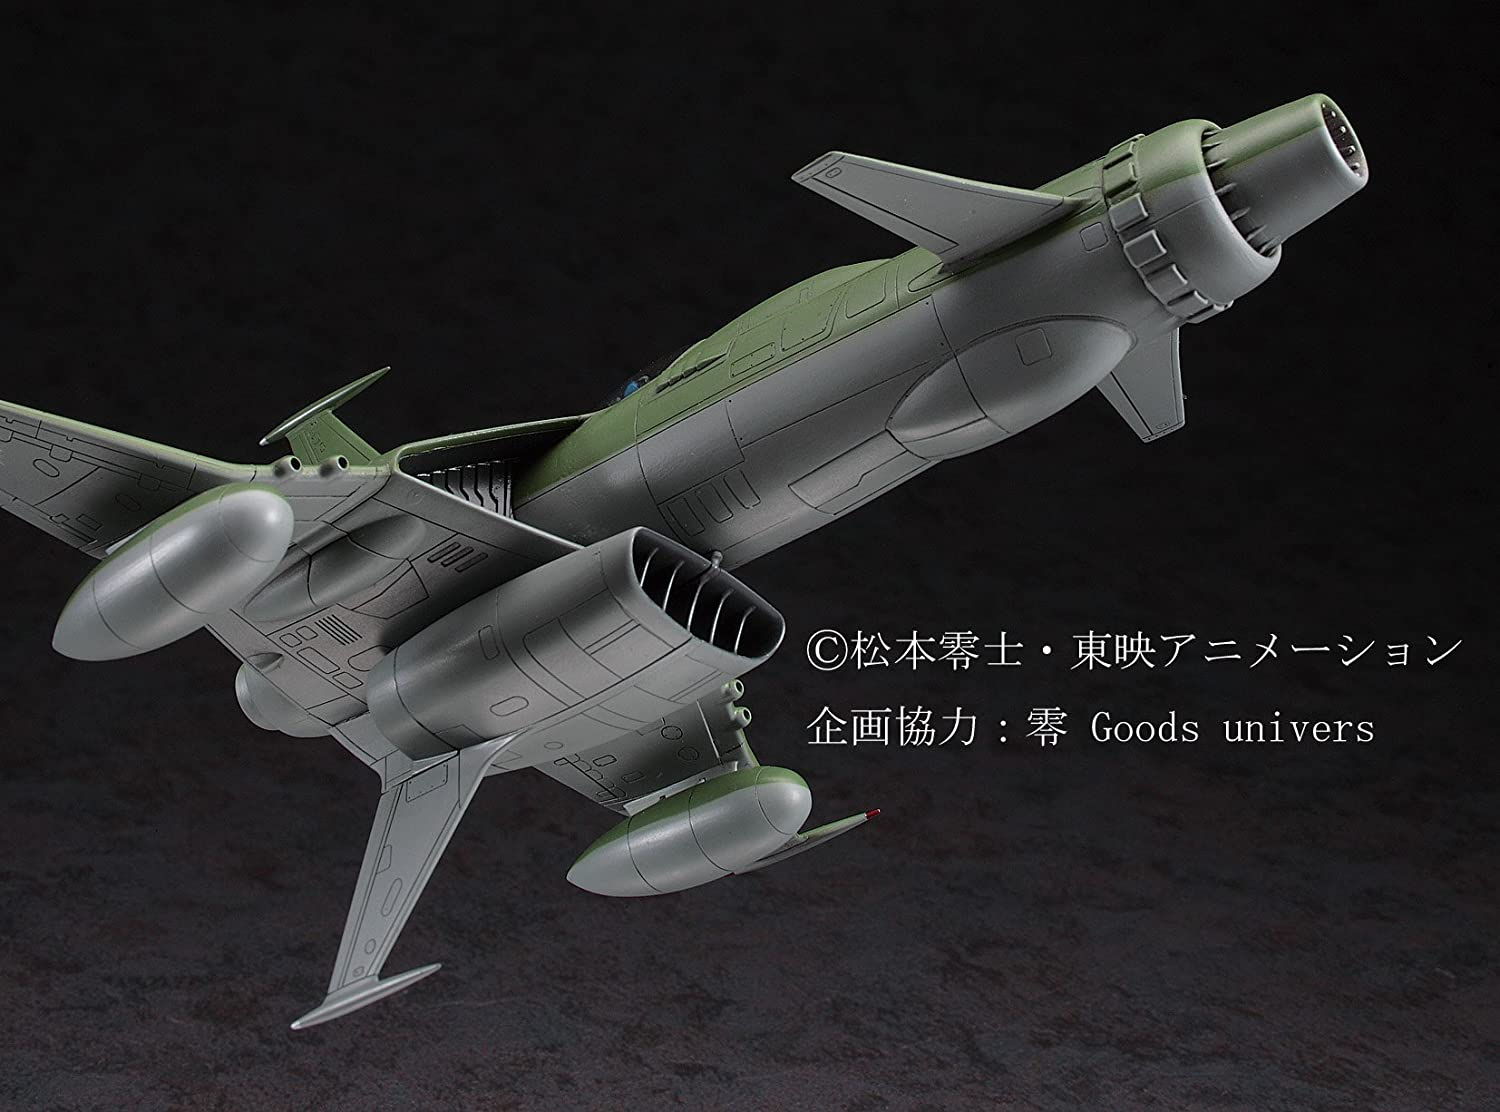 Hasegawa Captain 1//72 space pirate Hurlock space wolf SW-190 CW01 yJapanese plastic modelz